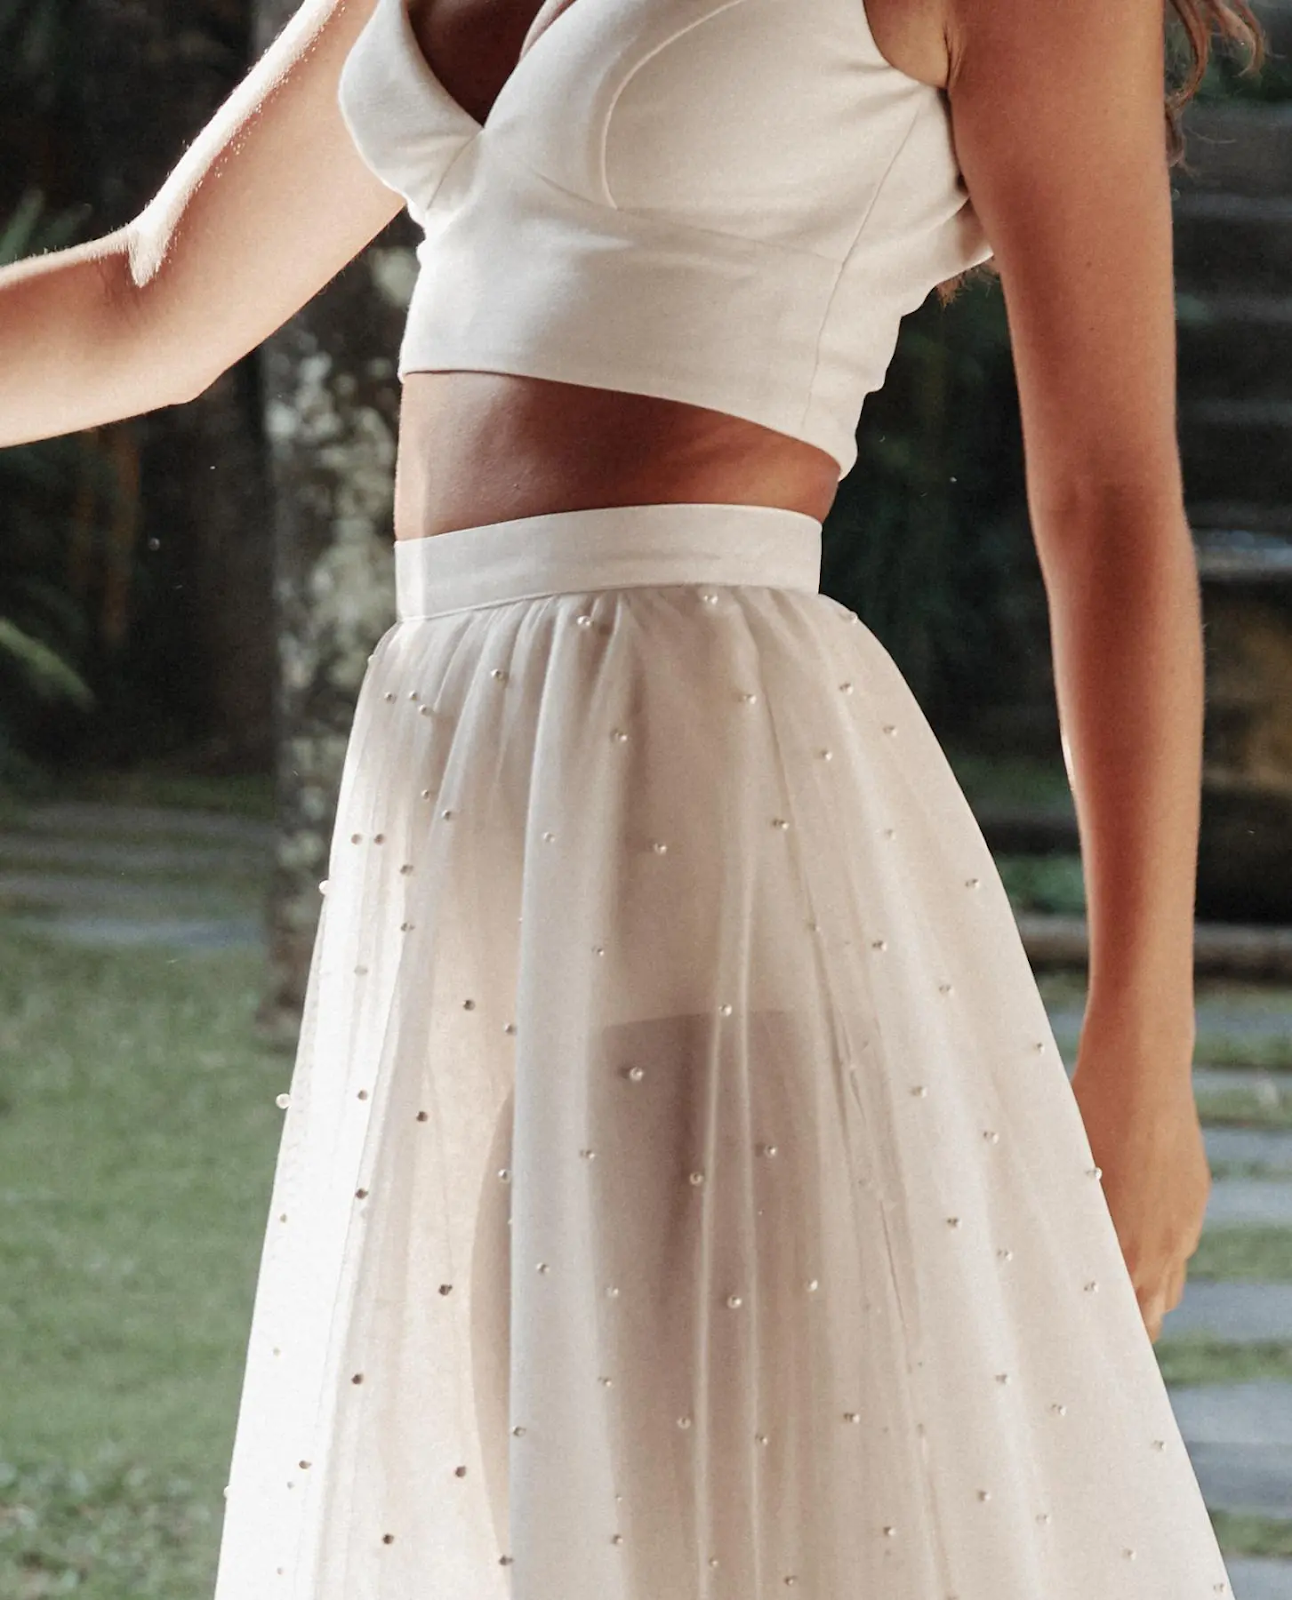 Wedding dress that has bodice top and flowing sheer skirt with mid-rift showing